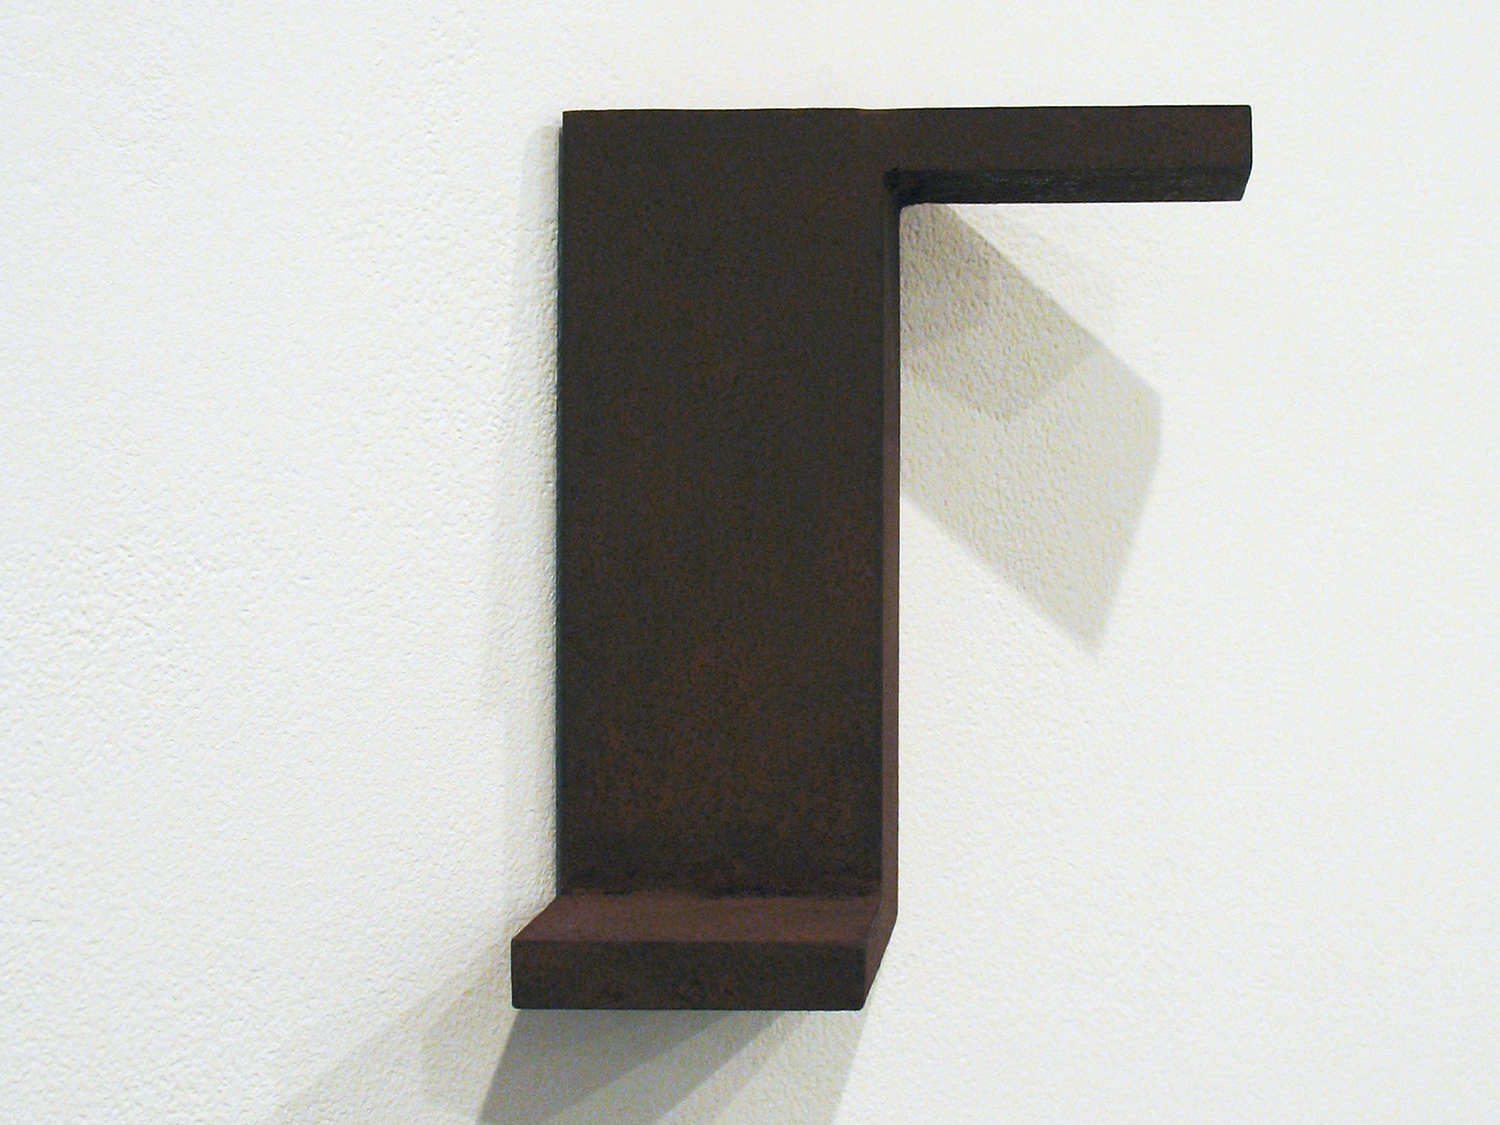 Untitled|Iron|17 x 18 x 10 cm|1983-4